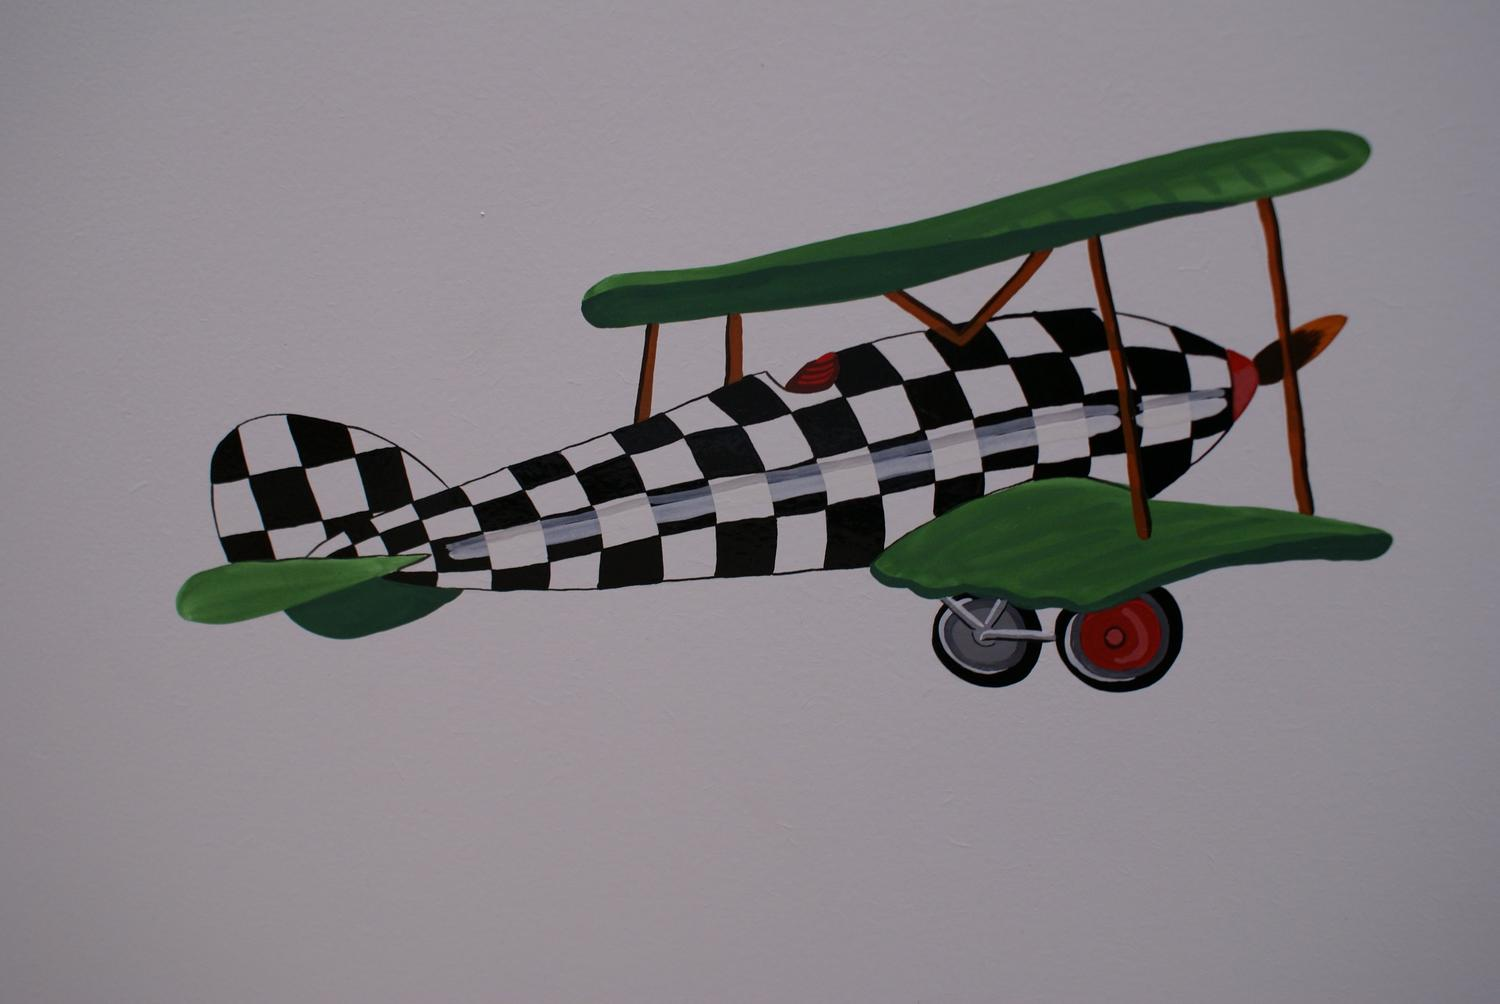 Flying airplane with Vintage Transport themed hand paintings | Dragons of Walton Street